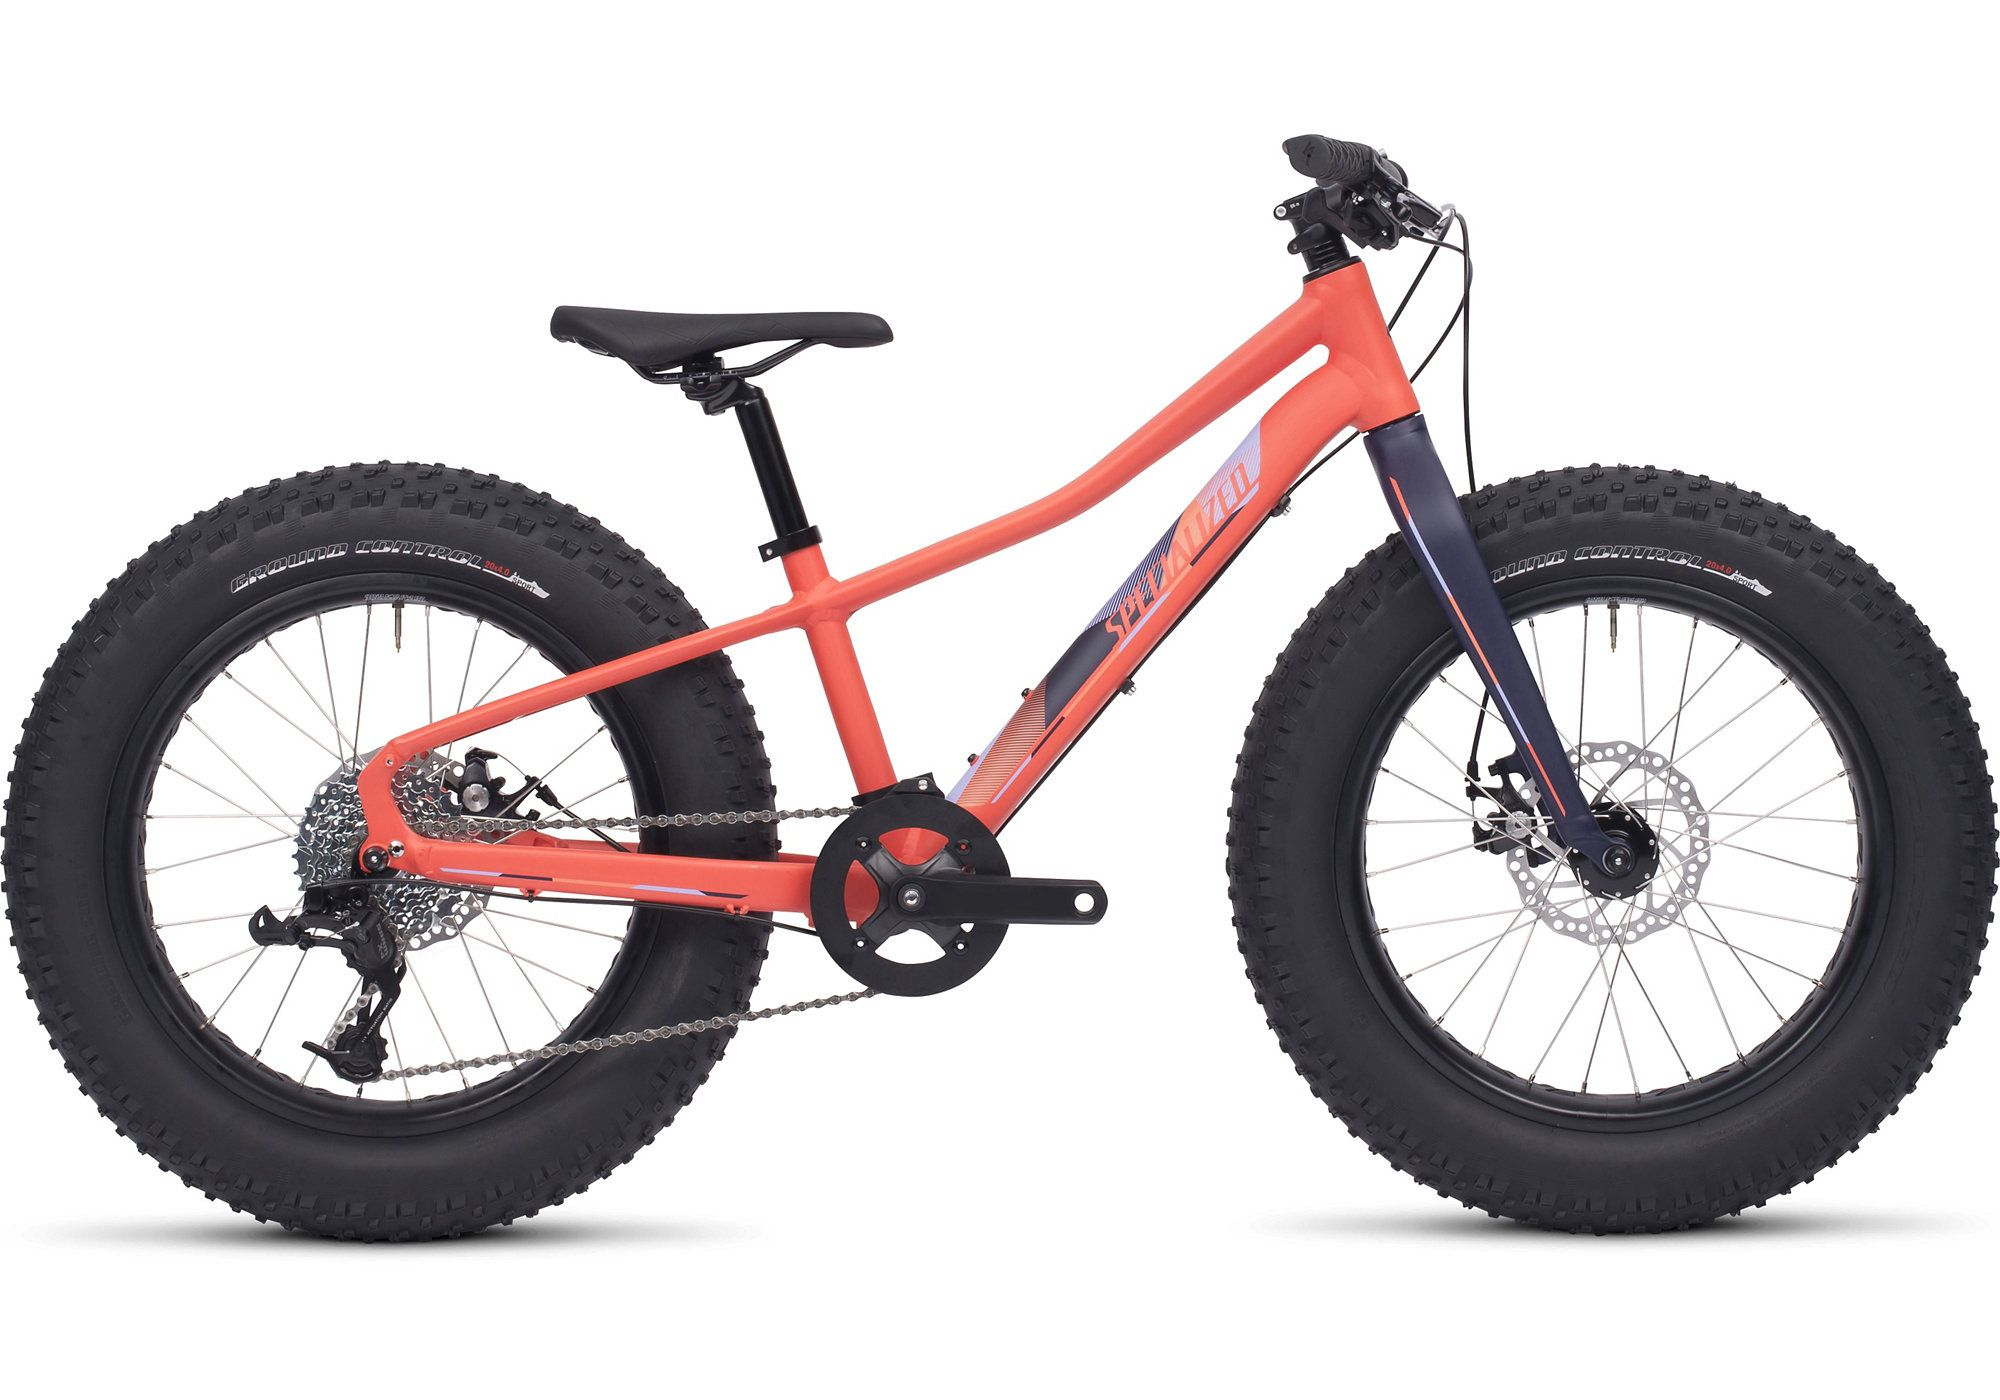 Велосипед Specialized Fatboy 20 2016 велосипед specialized sirrus elite 2015